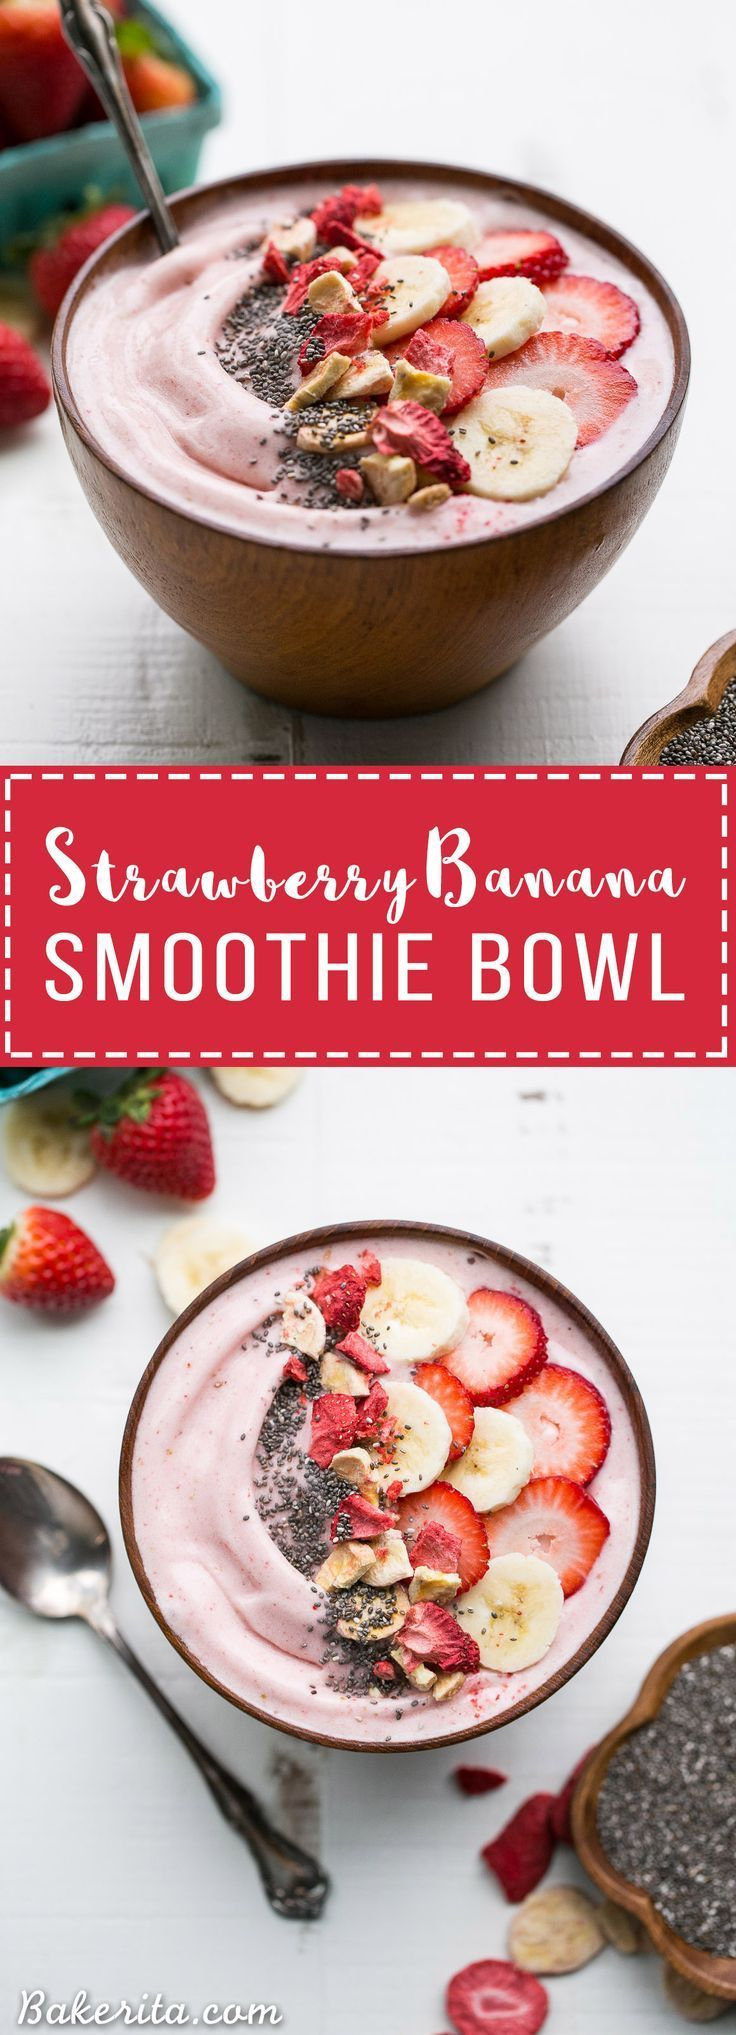 This easy Strawberry Banana Smoothie Bowl is a simple and sweet treat! It's a healthy Paleo + vegan breakfast or snack made with only a few ingredients, and you can add whichever toppings your heart d